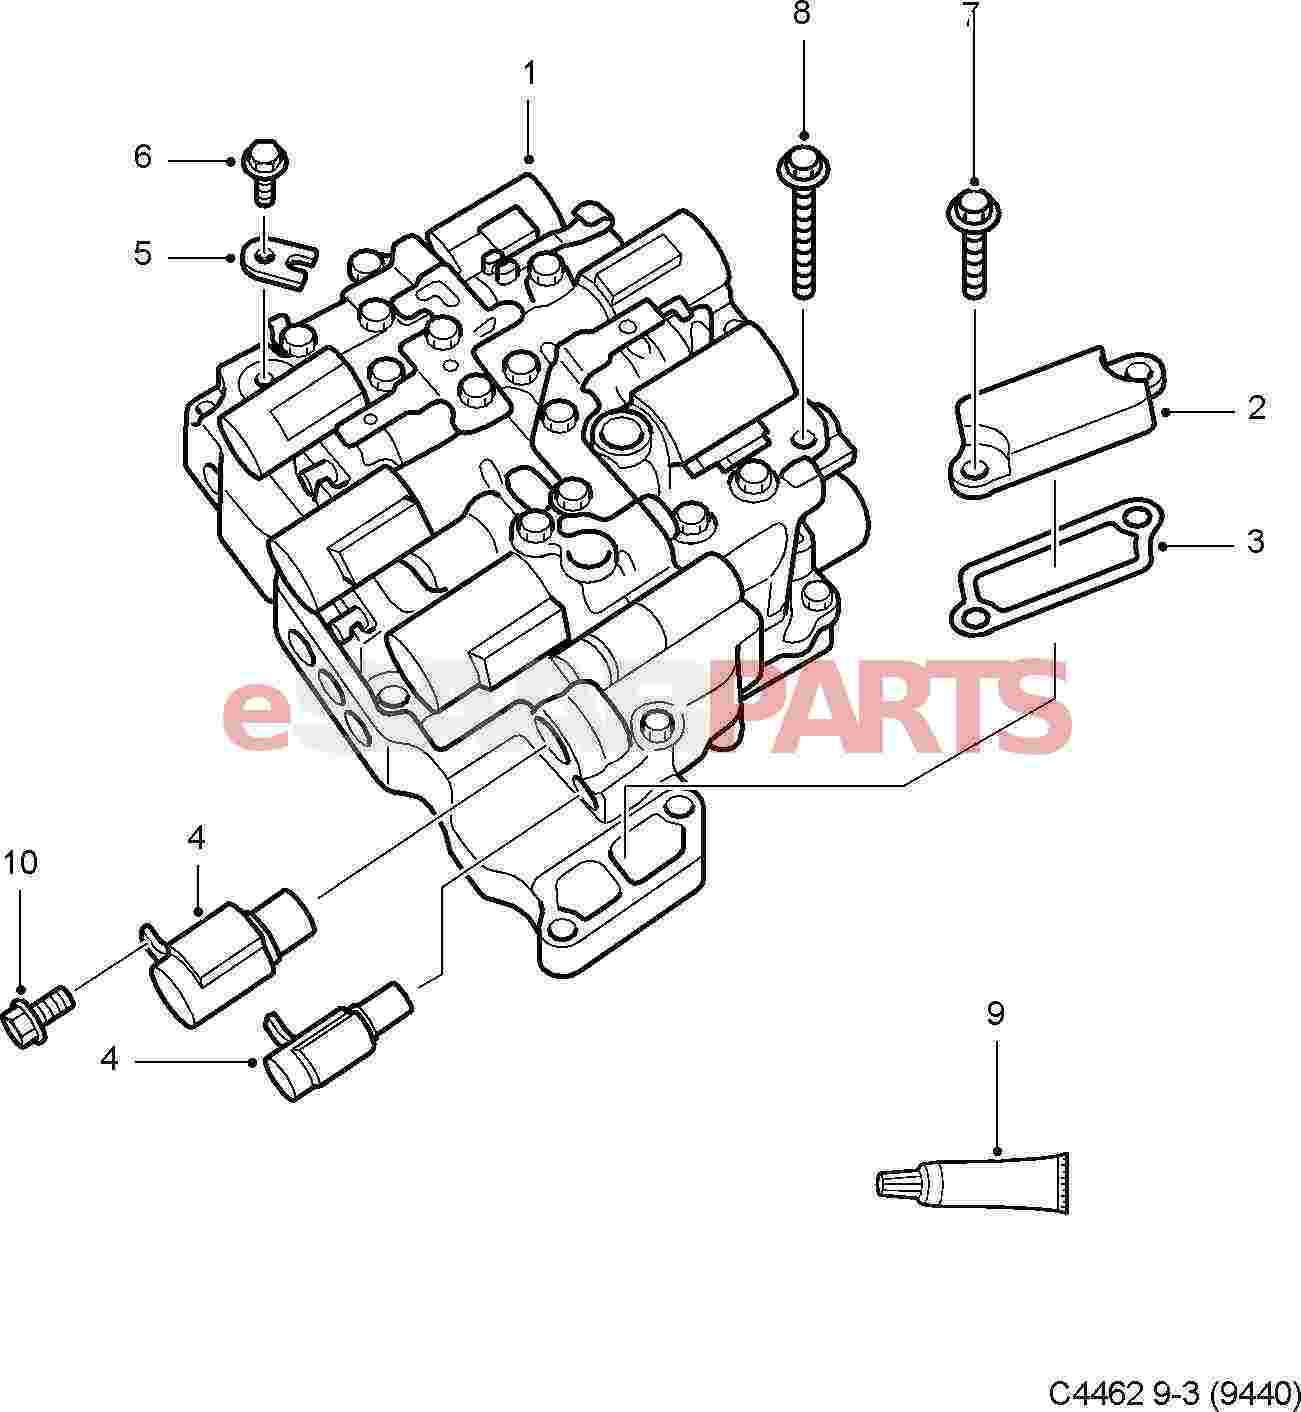 Engine Diagram Volvo S40 1 9 Turbo Volvo Auto